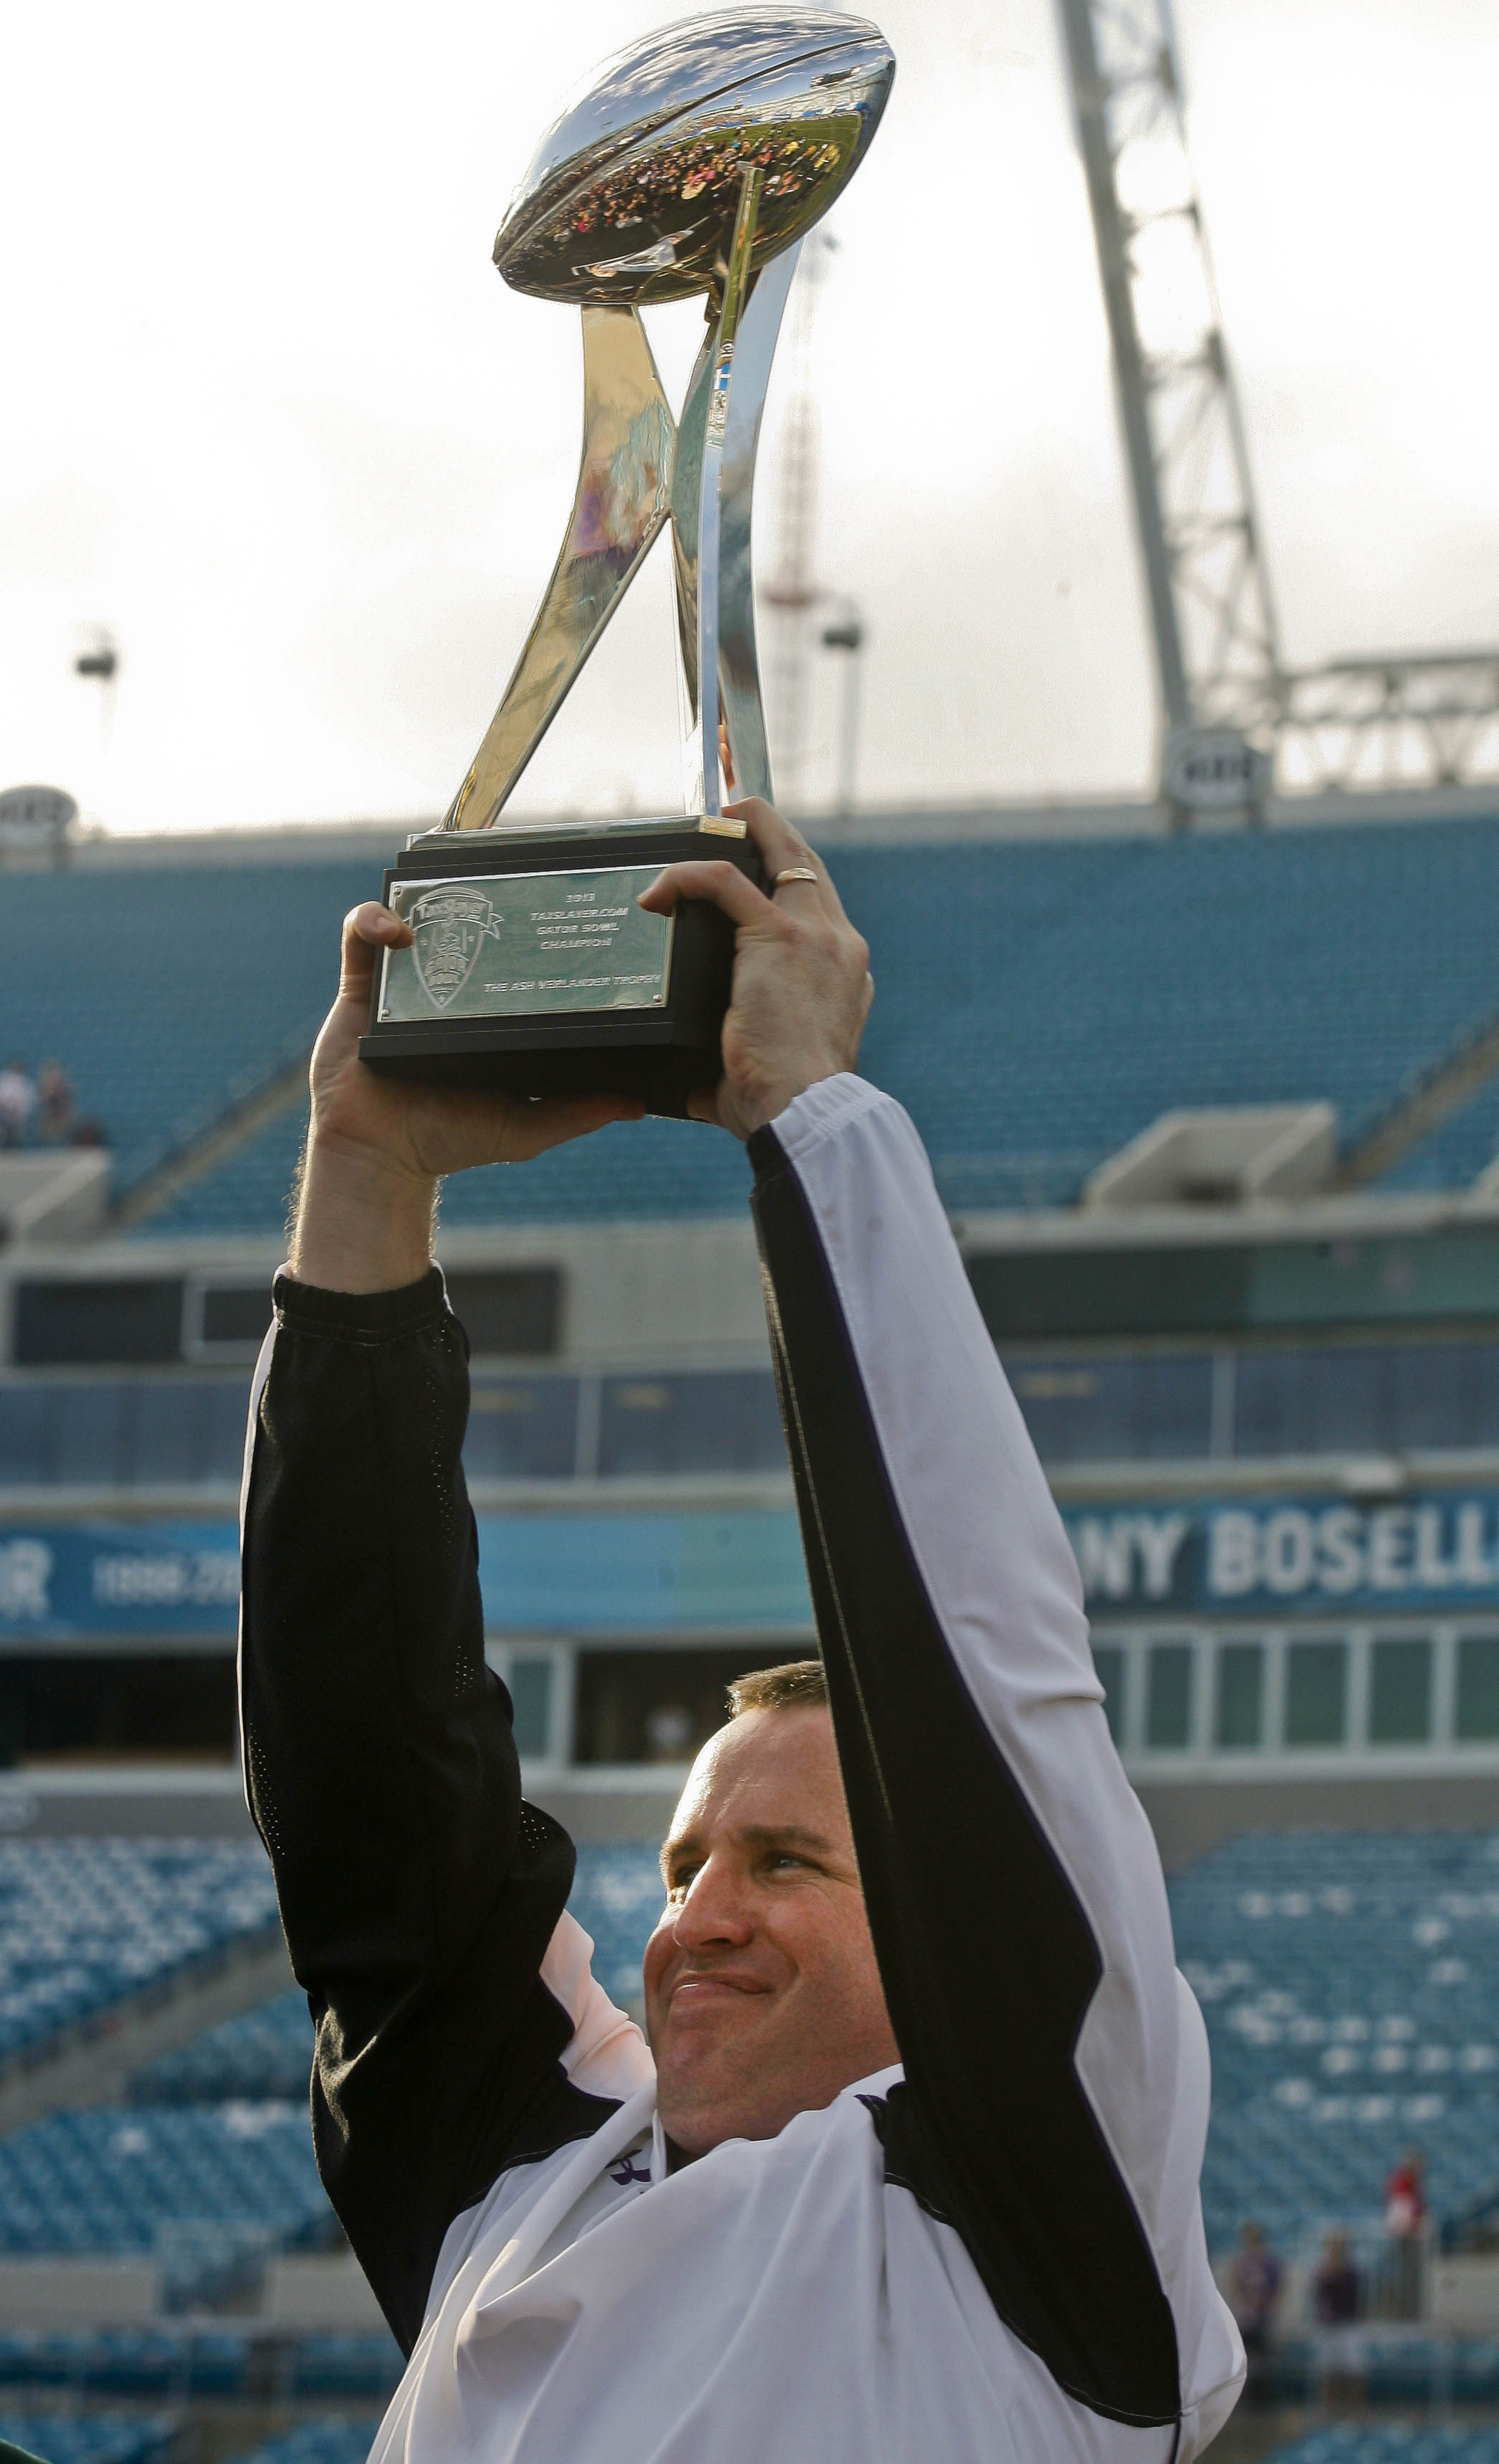 This is the Gator Bowl trophy. I'm not kidding.